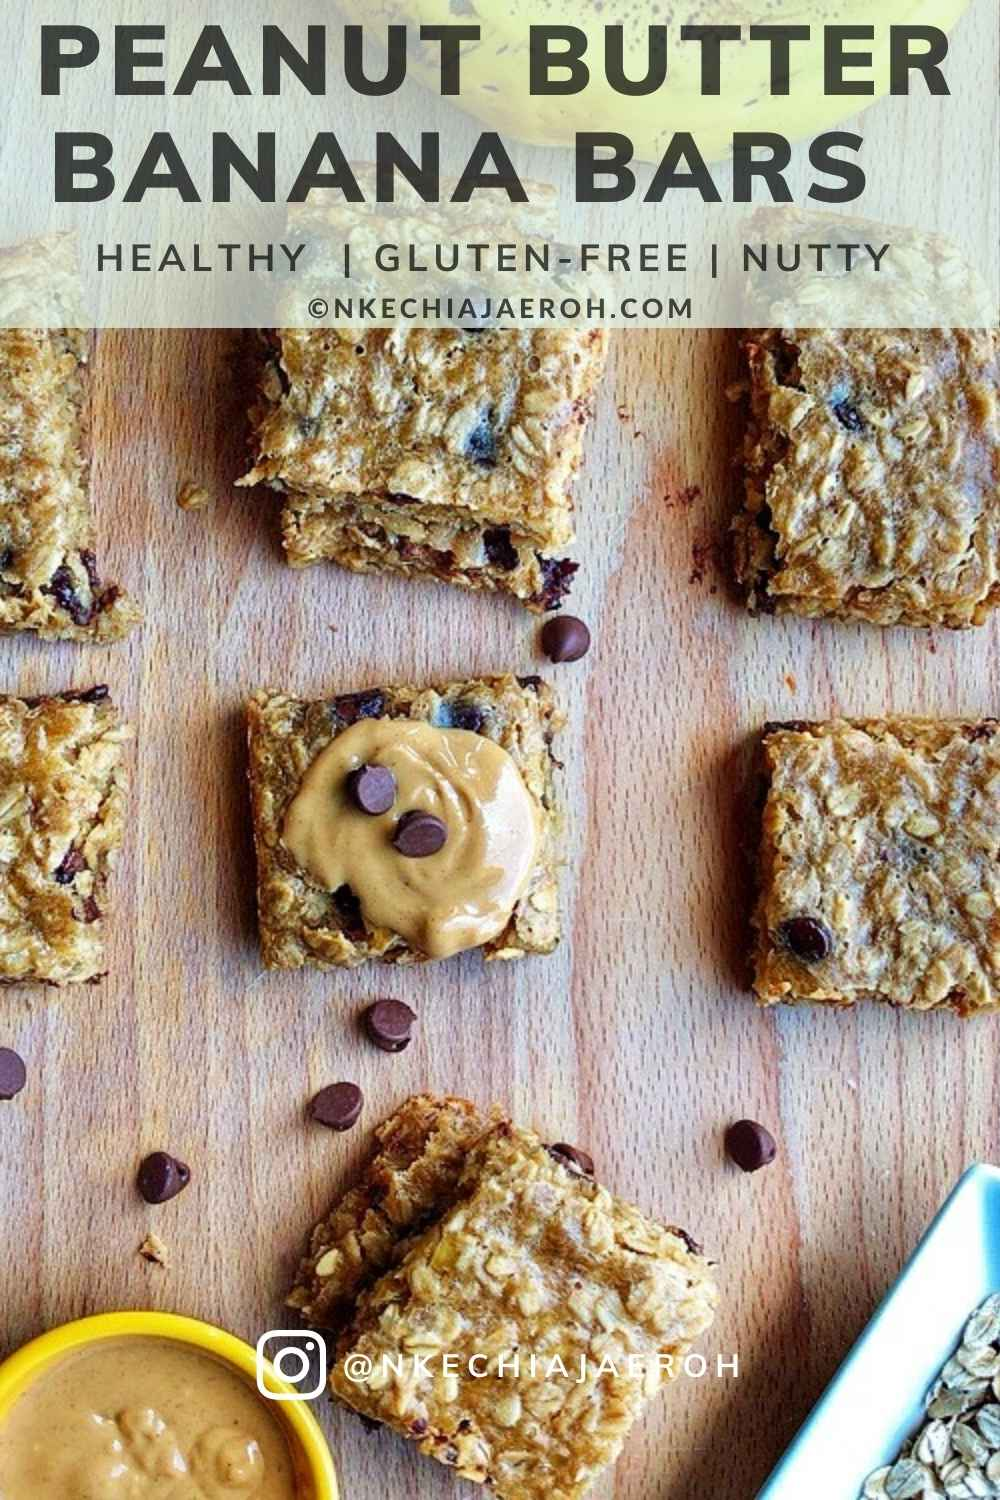 Gluten-free Peanut Butter Banana Oatmeal Bars These naturally gluten-free peanut butter banana bars are packed with healthy fat, energy-giving oats, fruits, chocolate chips, and soft baked to perfection! It has the right amount of saltiness and flavors! These easy to make peanut butter snack is currently my family's best snack for so many reasons, and I hope it would be yours! #Peanutbutterbars #bananarecipe #peanutbutterrecipe #healthysnack #NkechiAjaerohRecipes #Oatsbar #Oatmealrecipe